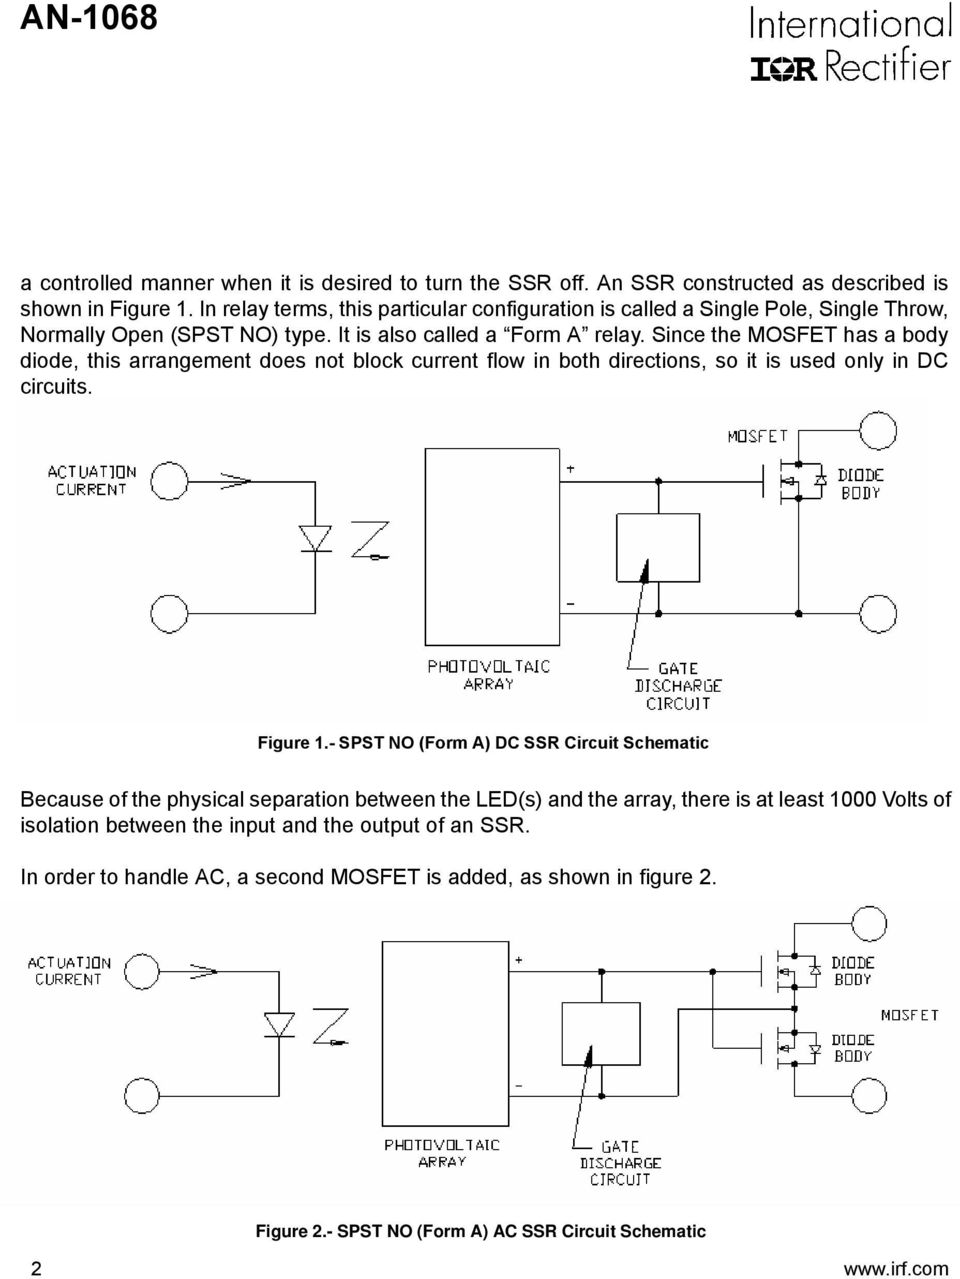 Application Note An 1068 Reva Pdf Ssr Wiring Diagram Ac To Dc Circuit Schematic 2 Since The Mosfet Has A Body Diode This Arrangement Does Not Block Current Flow In